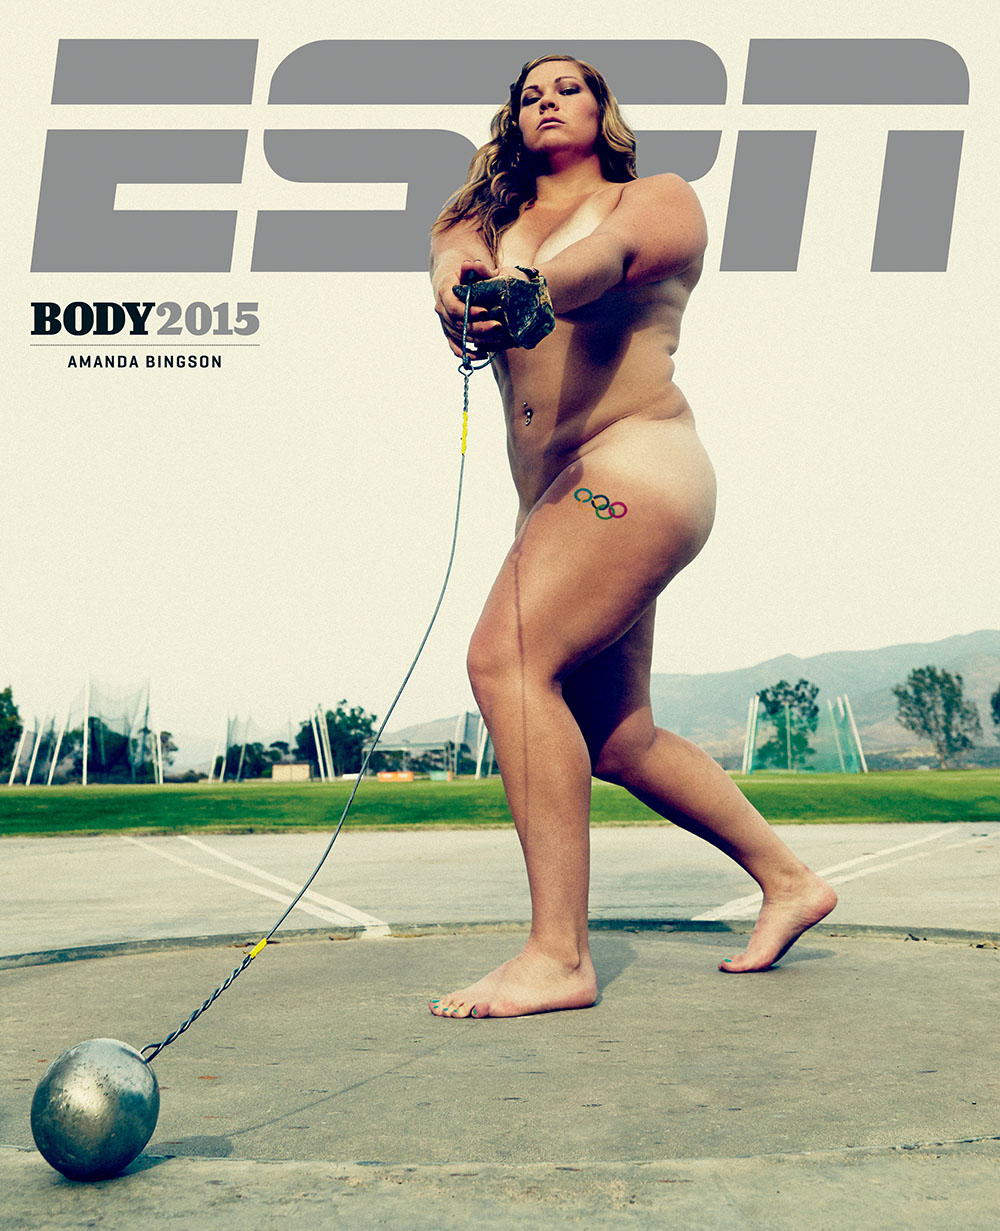 Photography News - Stunning sporty nudes by ESPN Amanda Bingson photographed by Peter Hapak